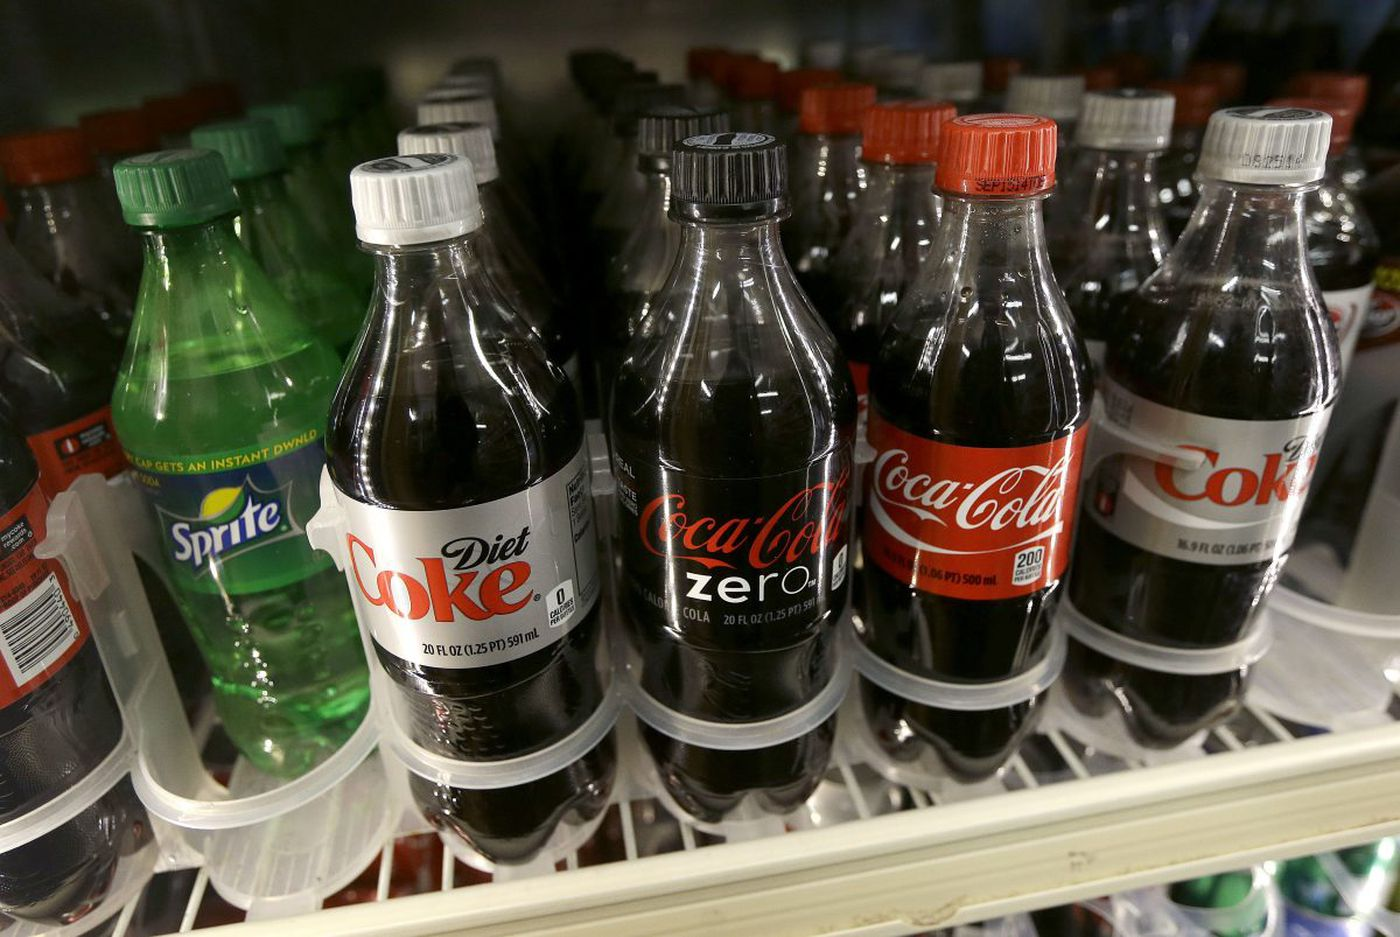 Philly soda tax revenue falling short, city adjusts plans for pre-K and other programs